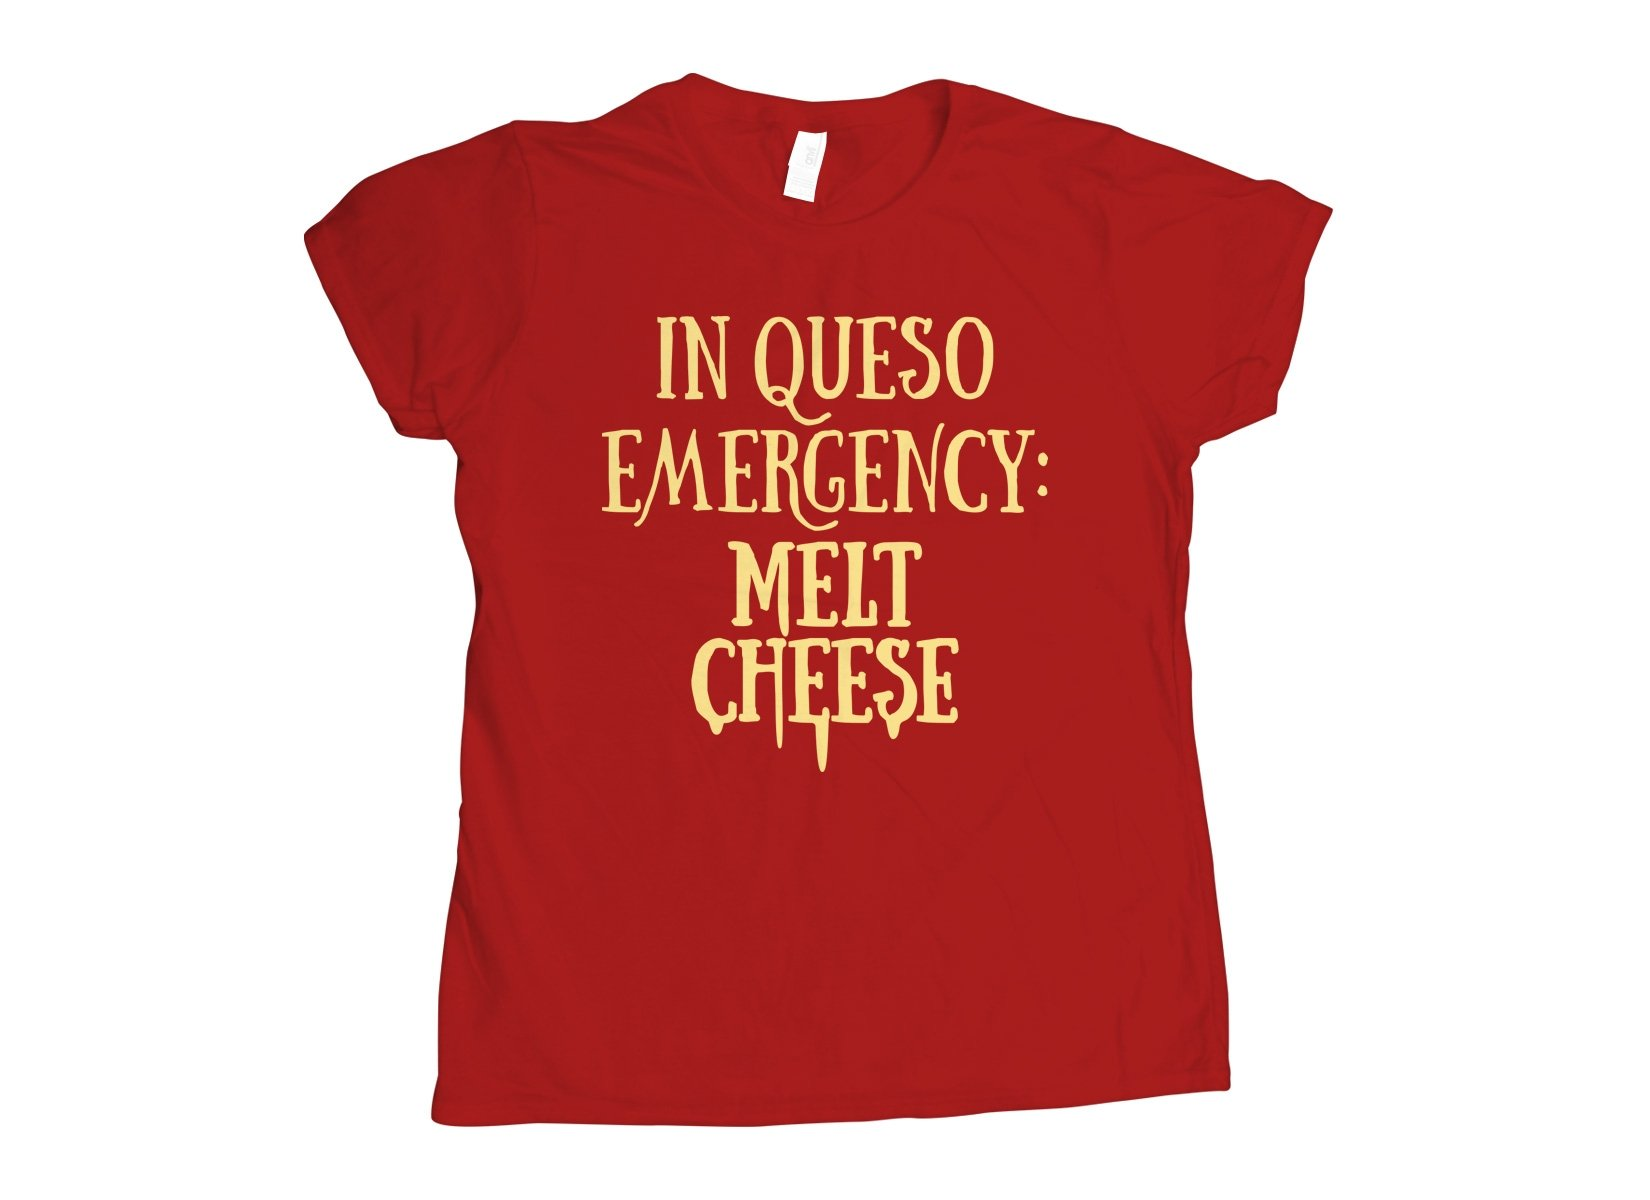 In Queso Emergency: Melt Cheese on Womens T-Shirt